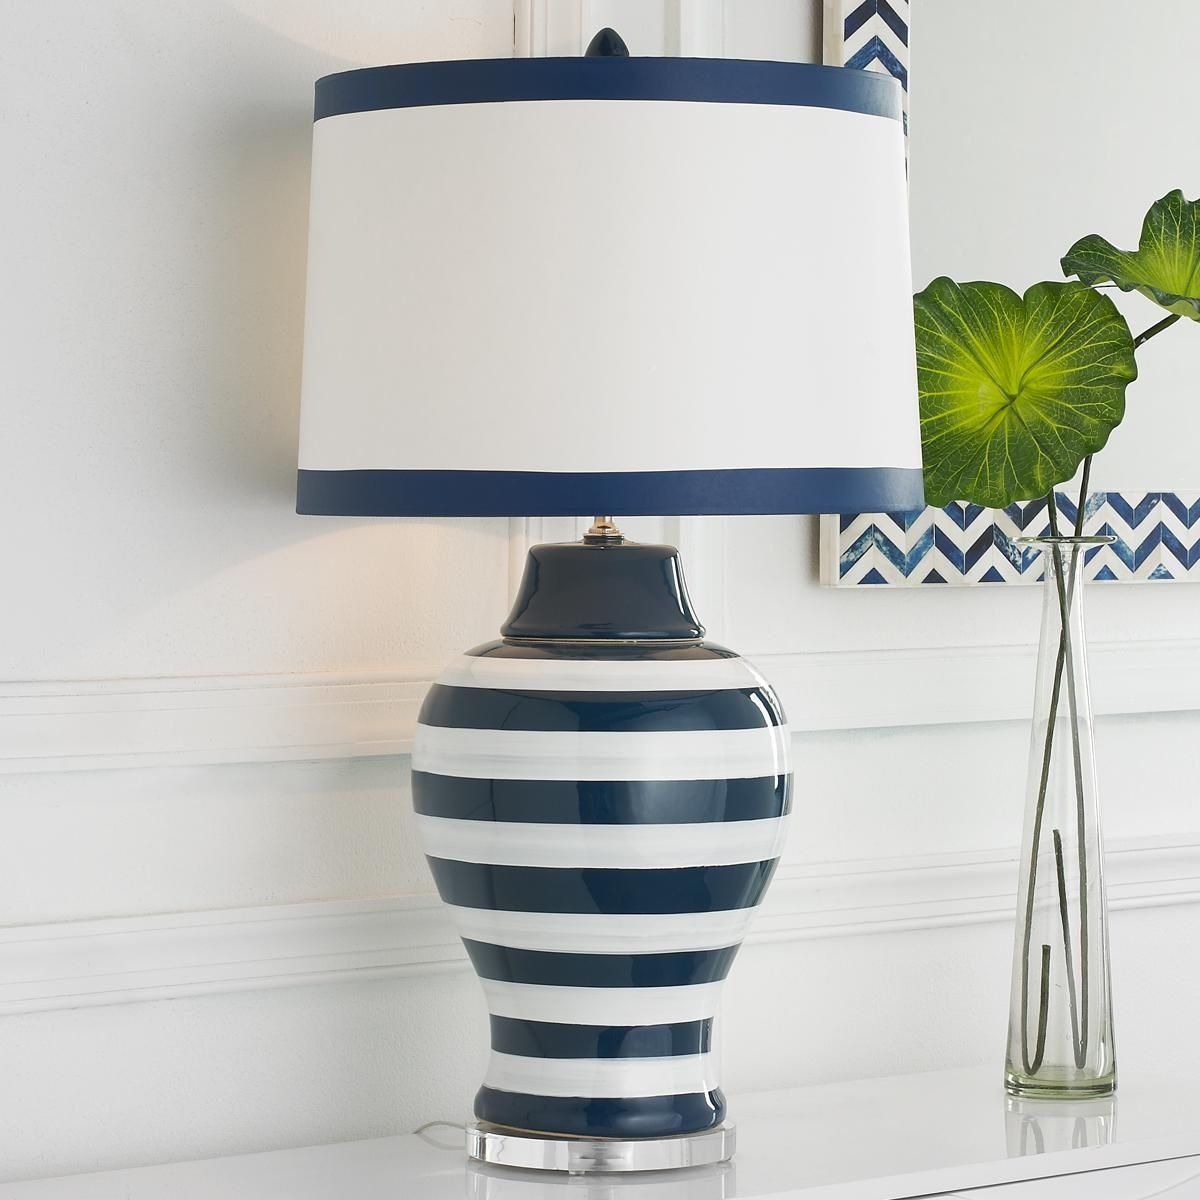 Navy and white stripe table lamp navy blue and white stripes navy and white stripe table lamp navy blue and white stripes always add that classic chic geotapseo Image collections